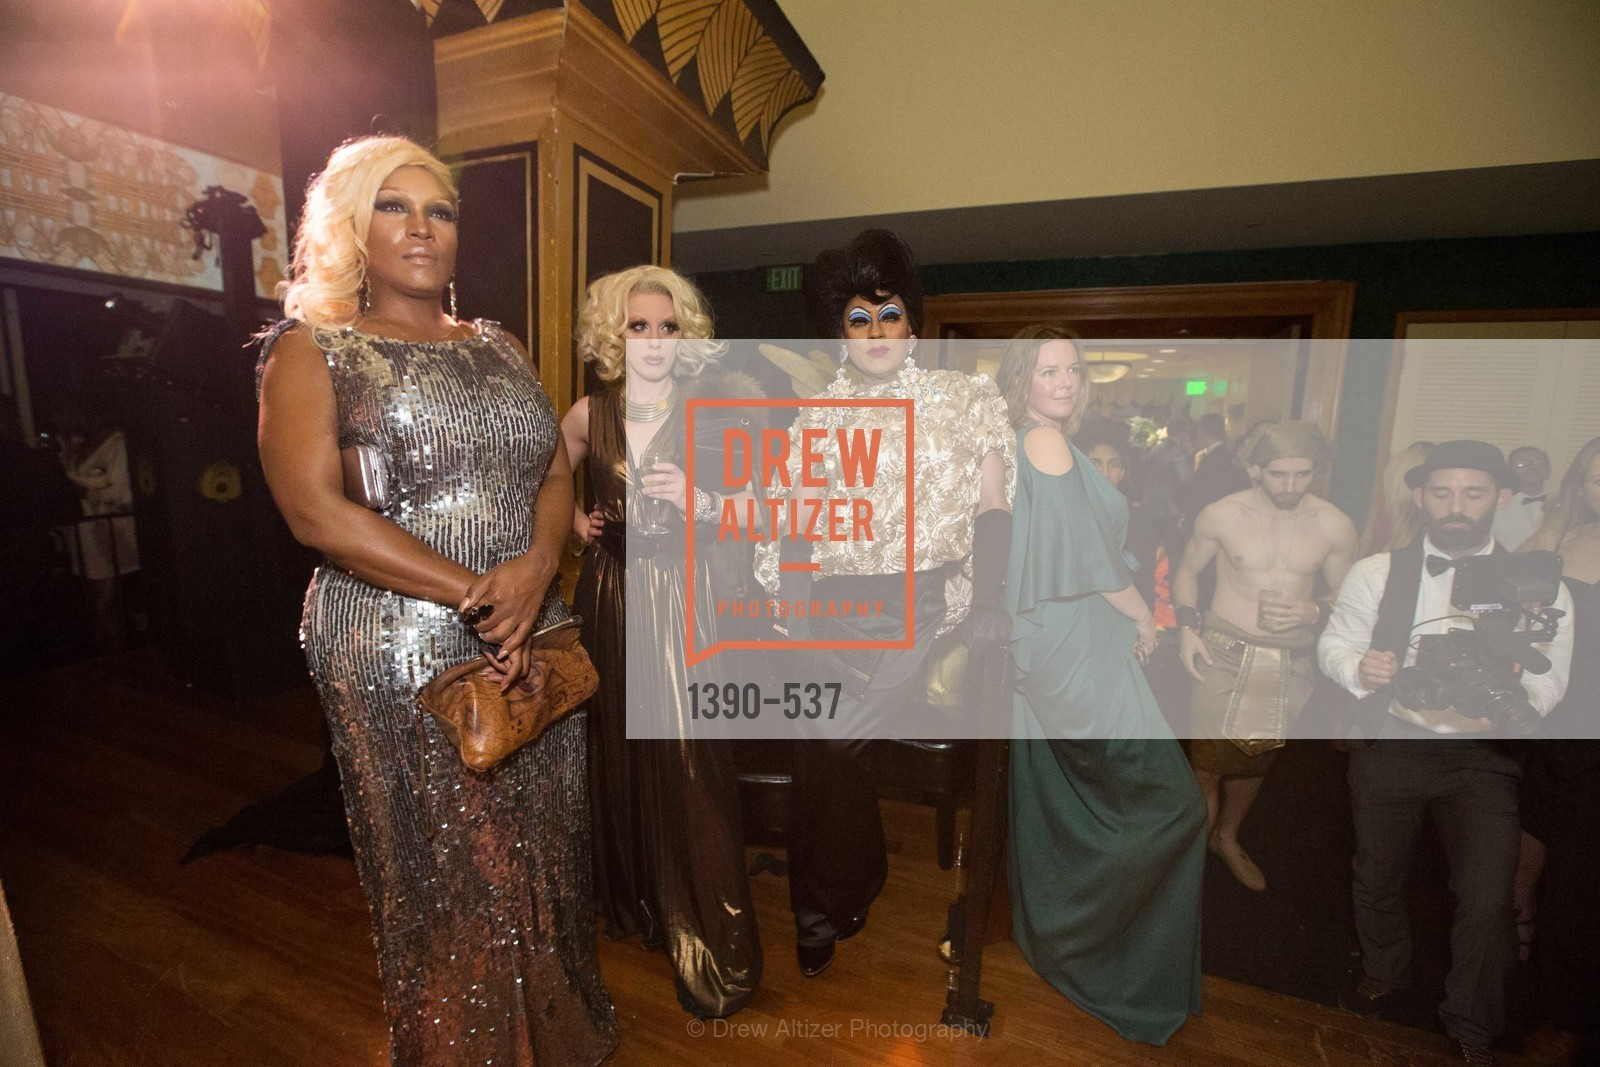 Dallas, Simone Gemini, Raja, Juanita More, TOP OF THE MARK'S 75TH Anniversary Party, US, November 7th, 2014,Drew Altizer, Drew Altizer Photography, full-service event agency, private events, San Francisco photographer, photographer California